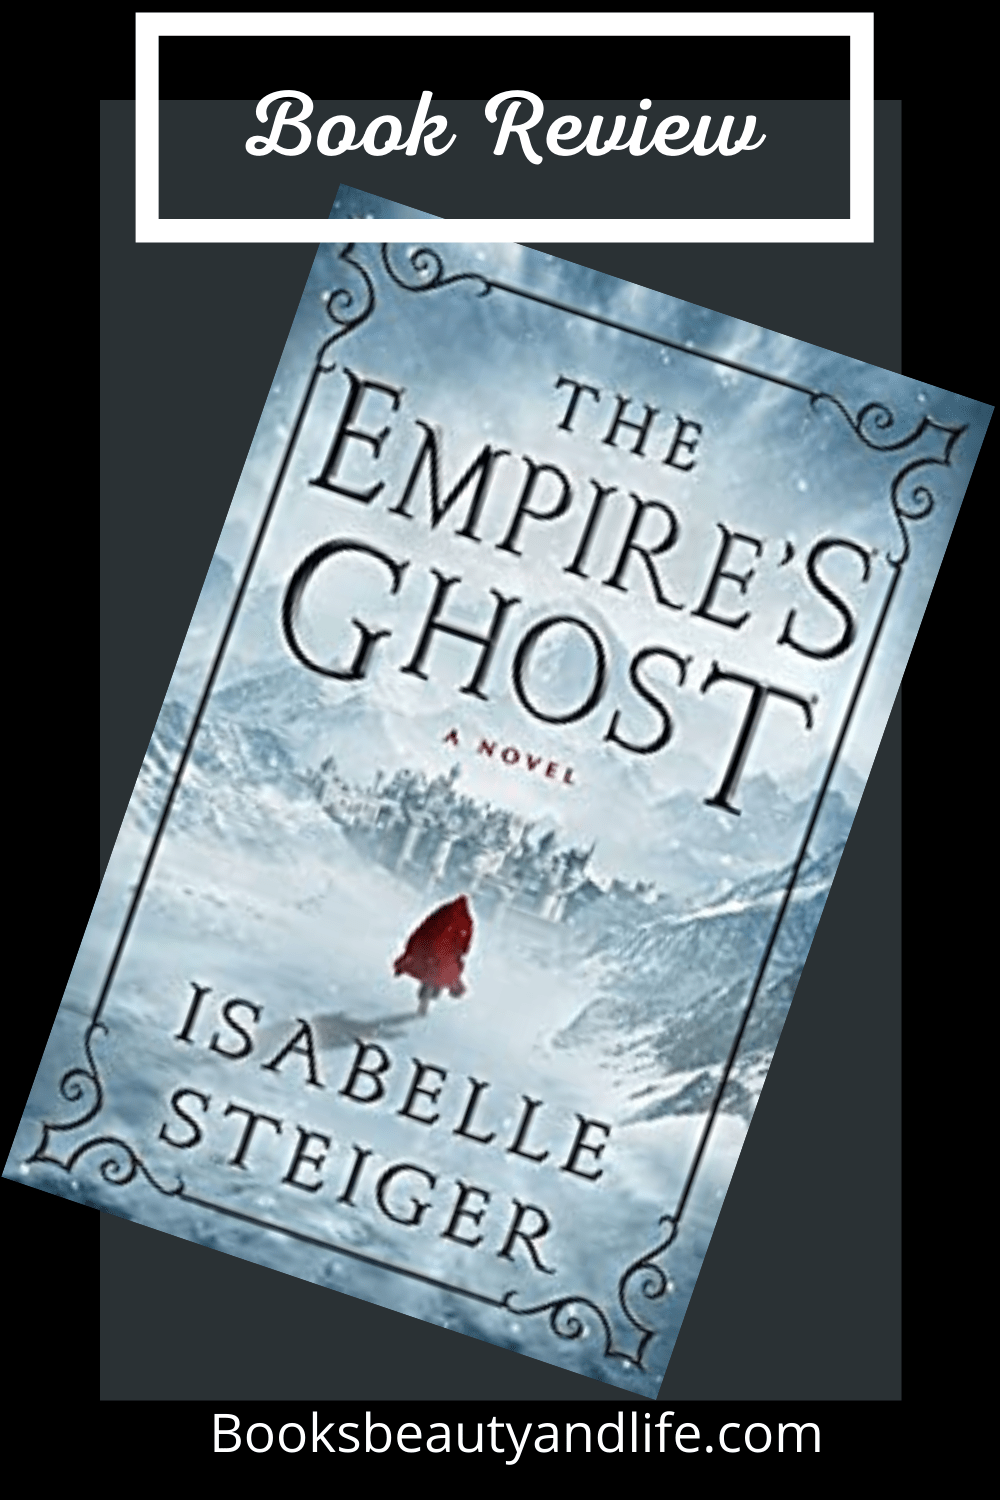 The Empire's Ghost by Isabelle Steiger – Review